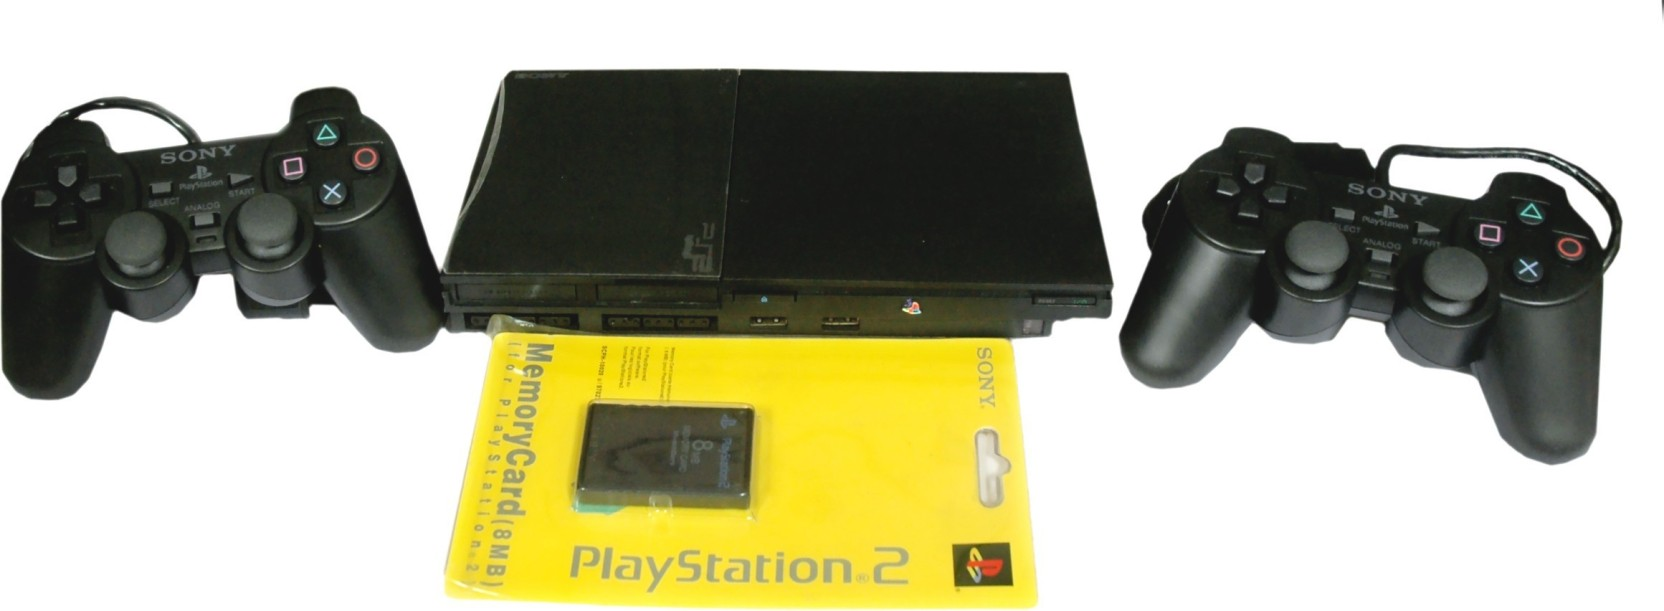 Sony playstation 2 ps2 price in india buy sony playstation 2 ps2 black online sony - Playstation 2 console price ...